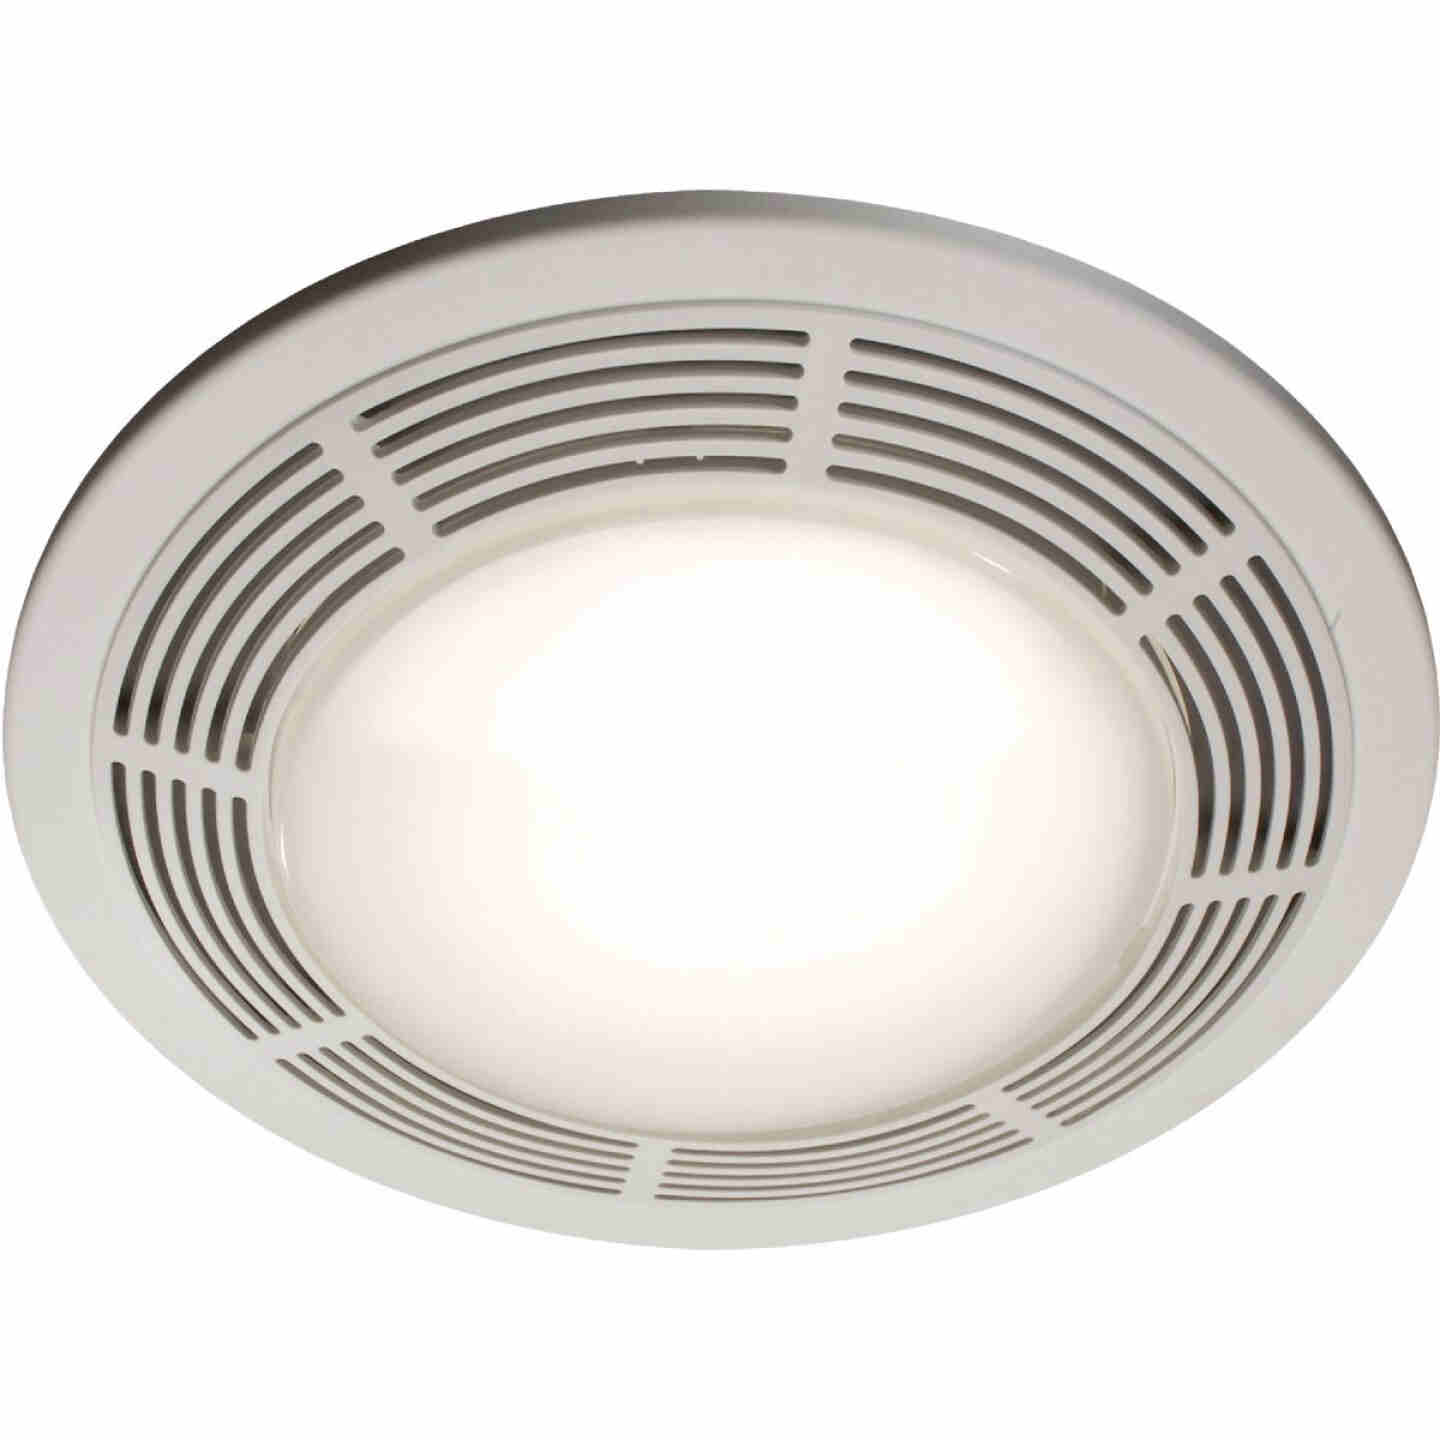 Broan 100 CFM 3.5 Sones 120V Bath Exhaust Fan with Light Image 1